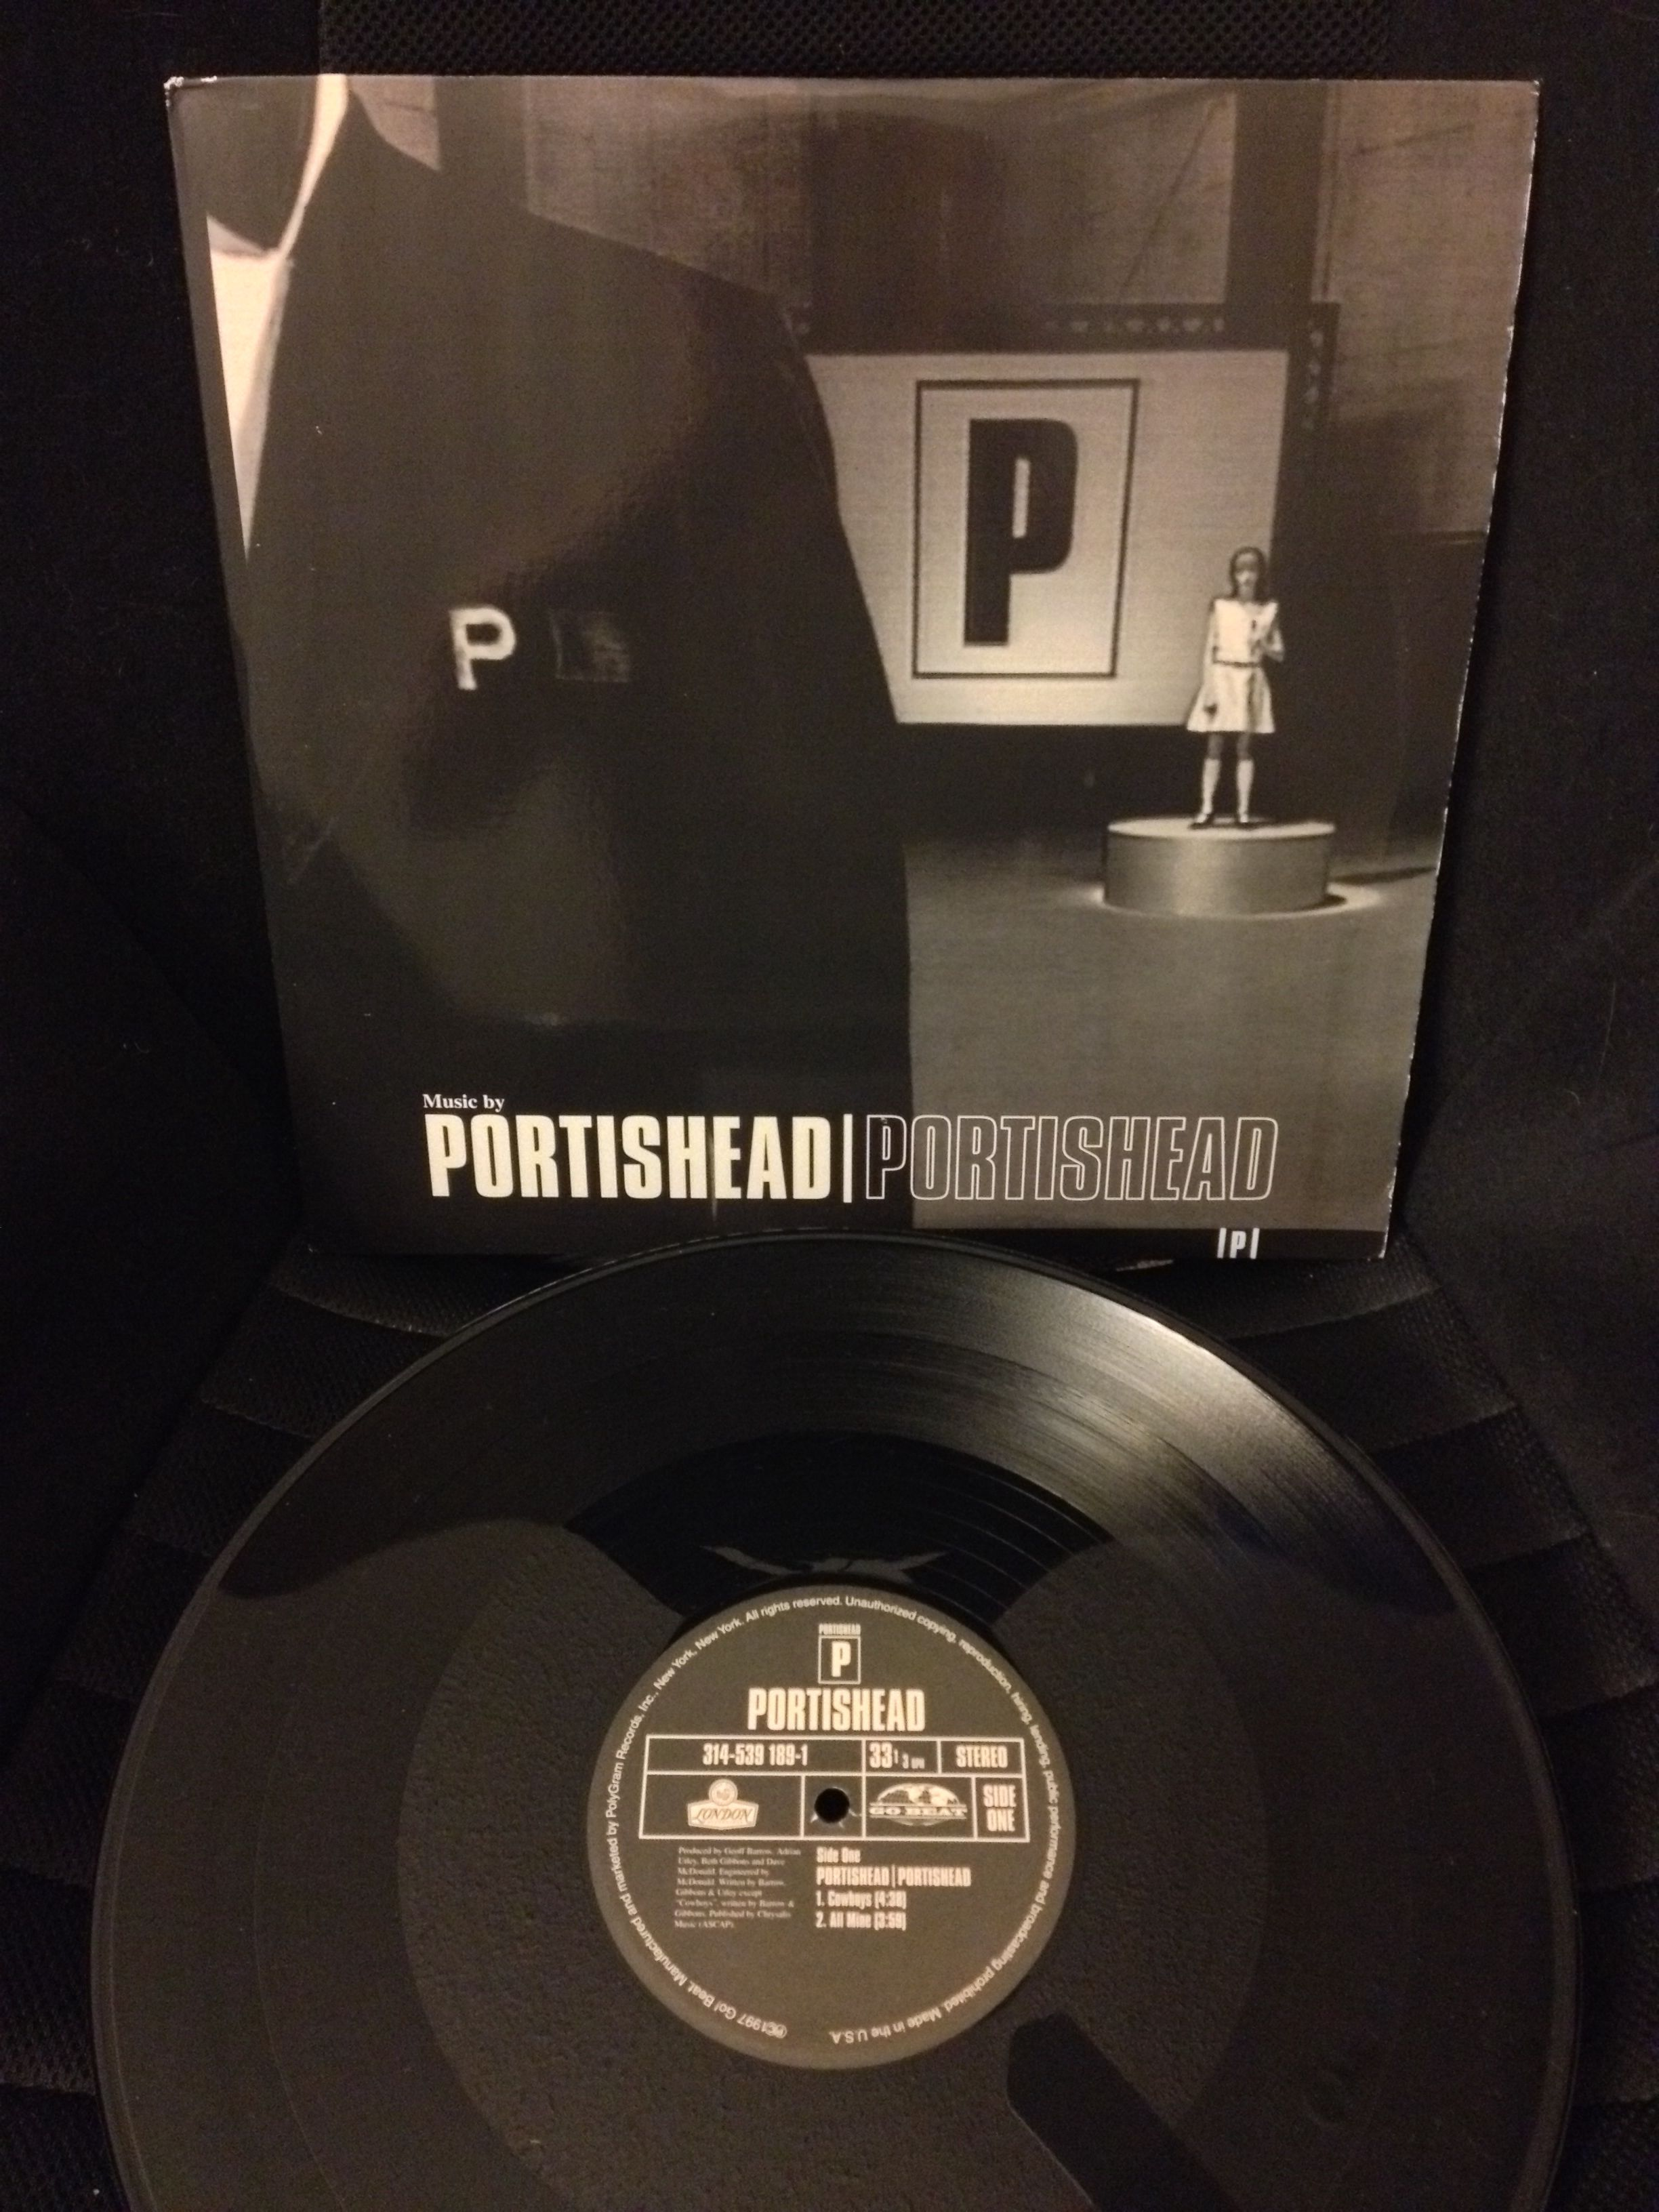 Portishead Portishead Vinyl Records Music Record Records